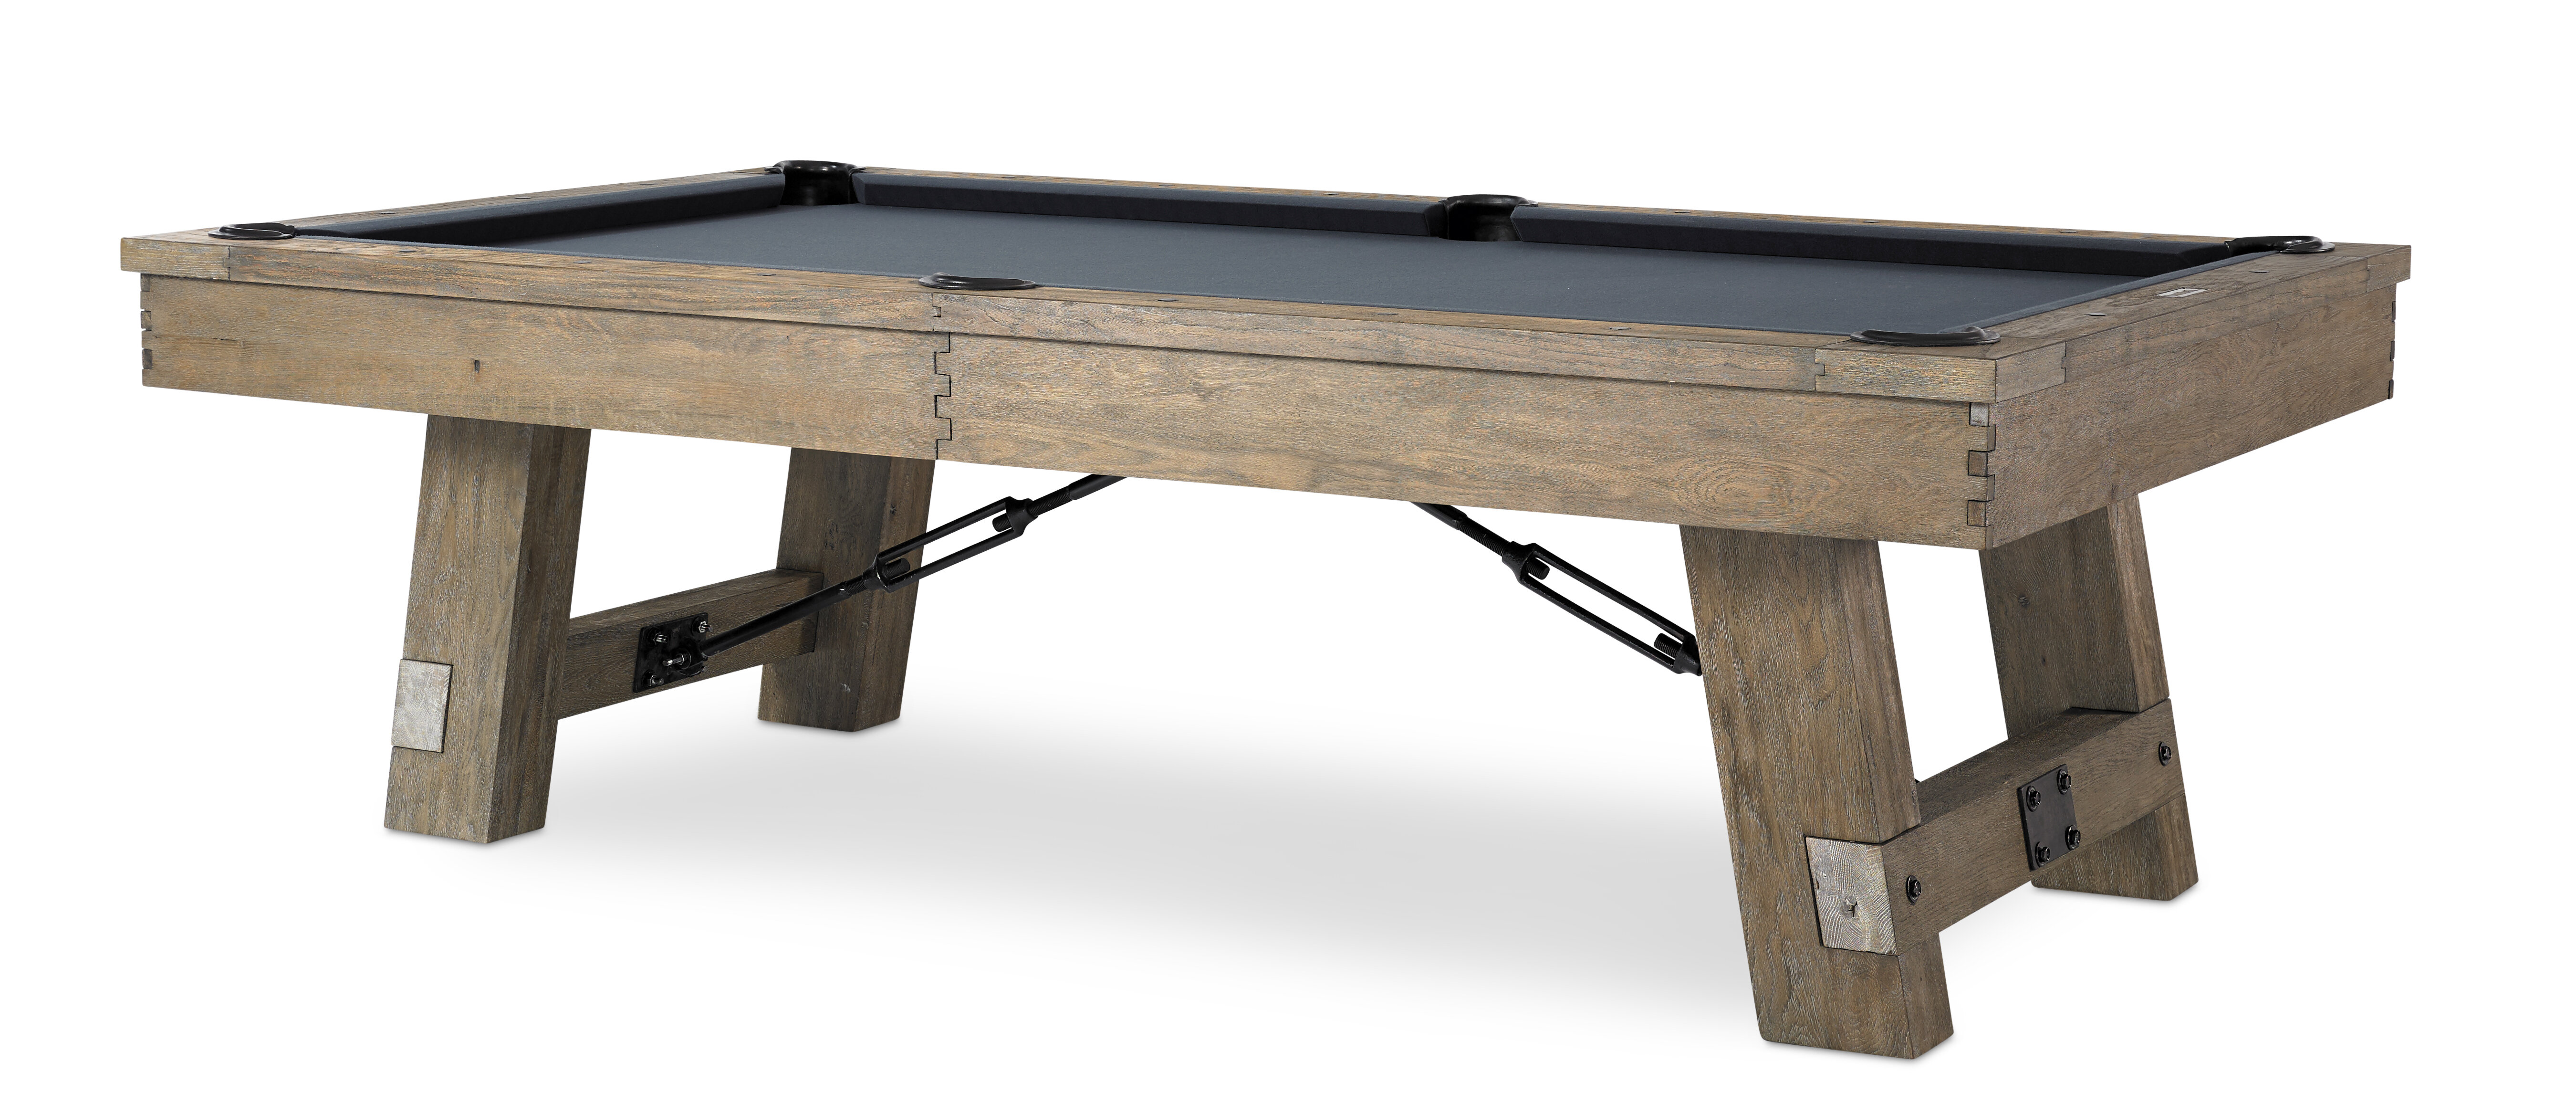 Plank Hide Isaac Slate Pool Table With Professional Installation Included